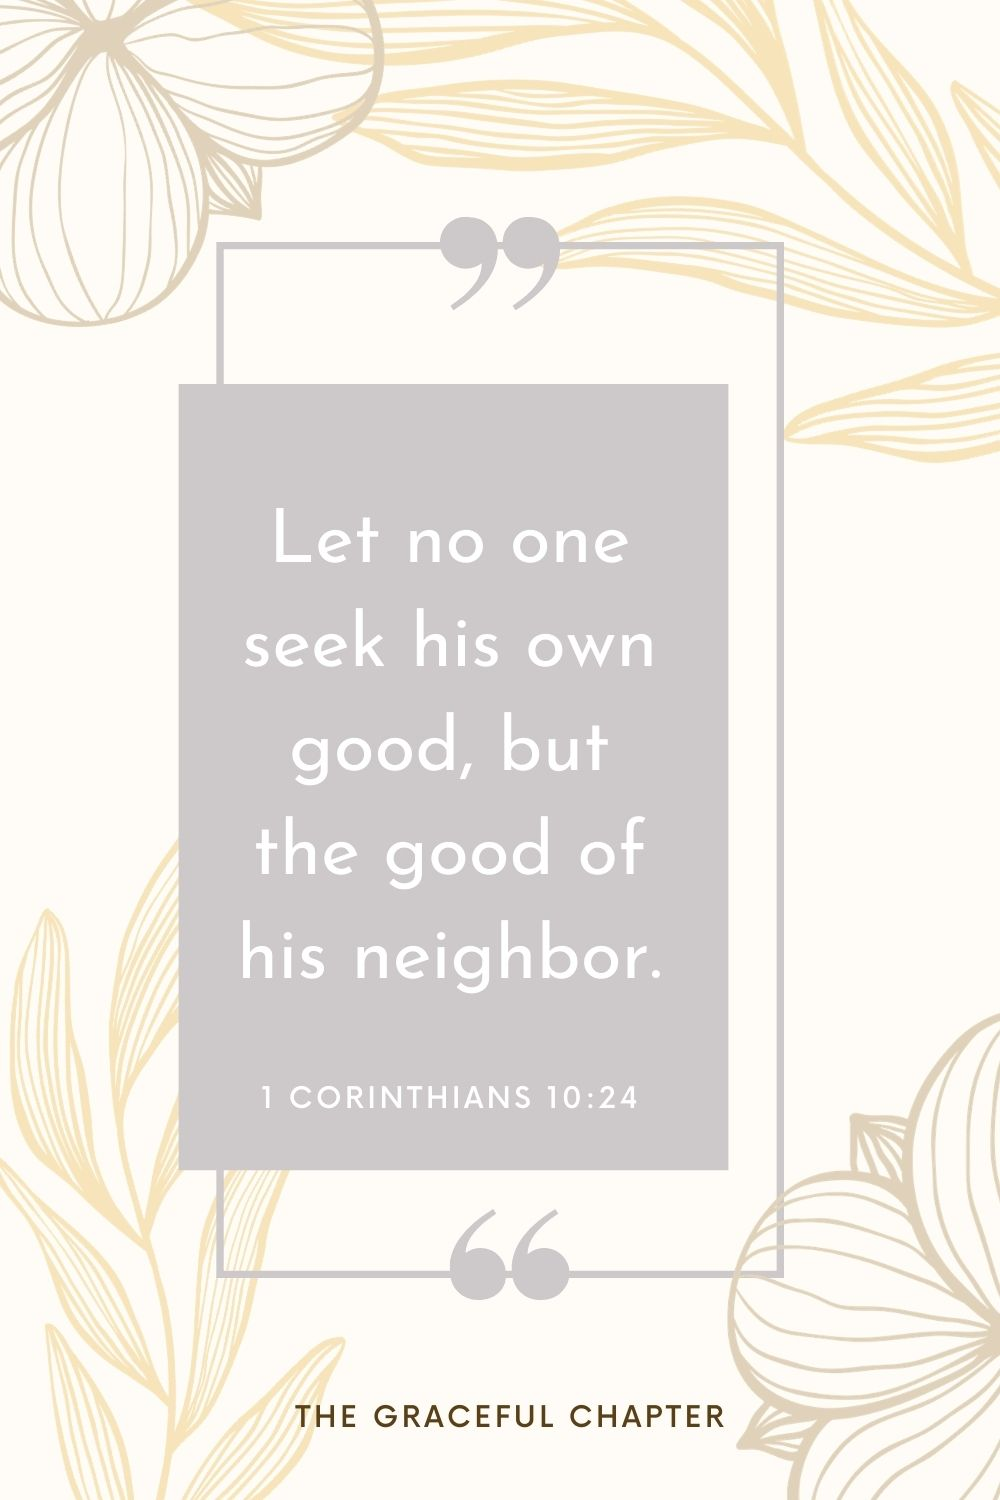 Let no one seek his own good, but the good of his neighbor. 1 Corinthians 10:24